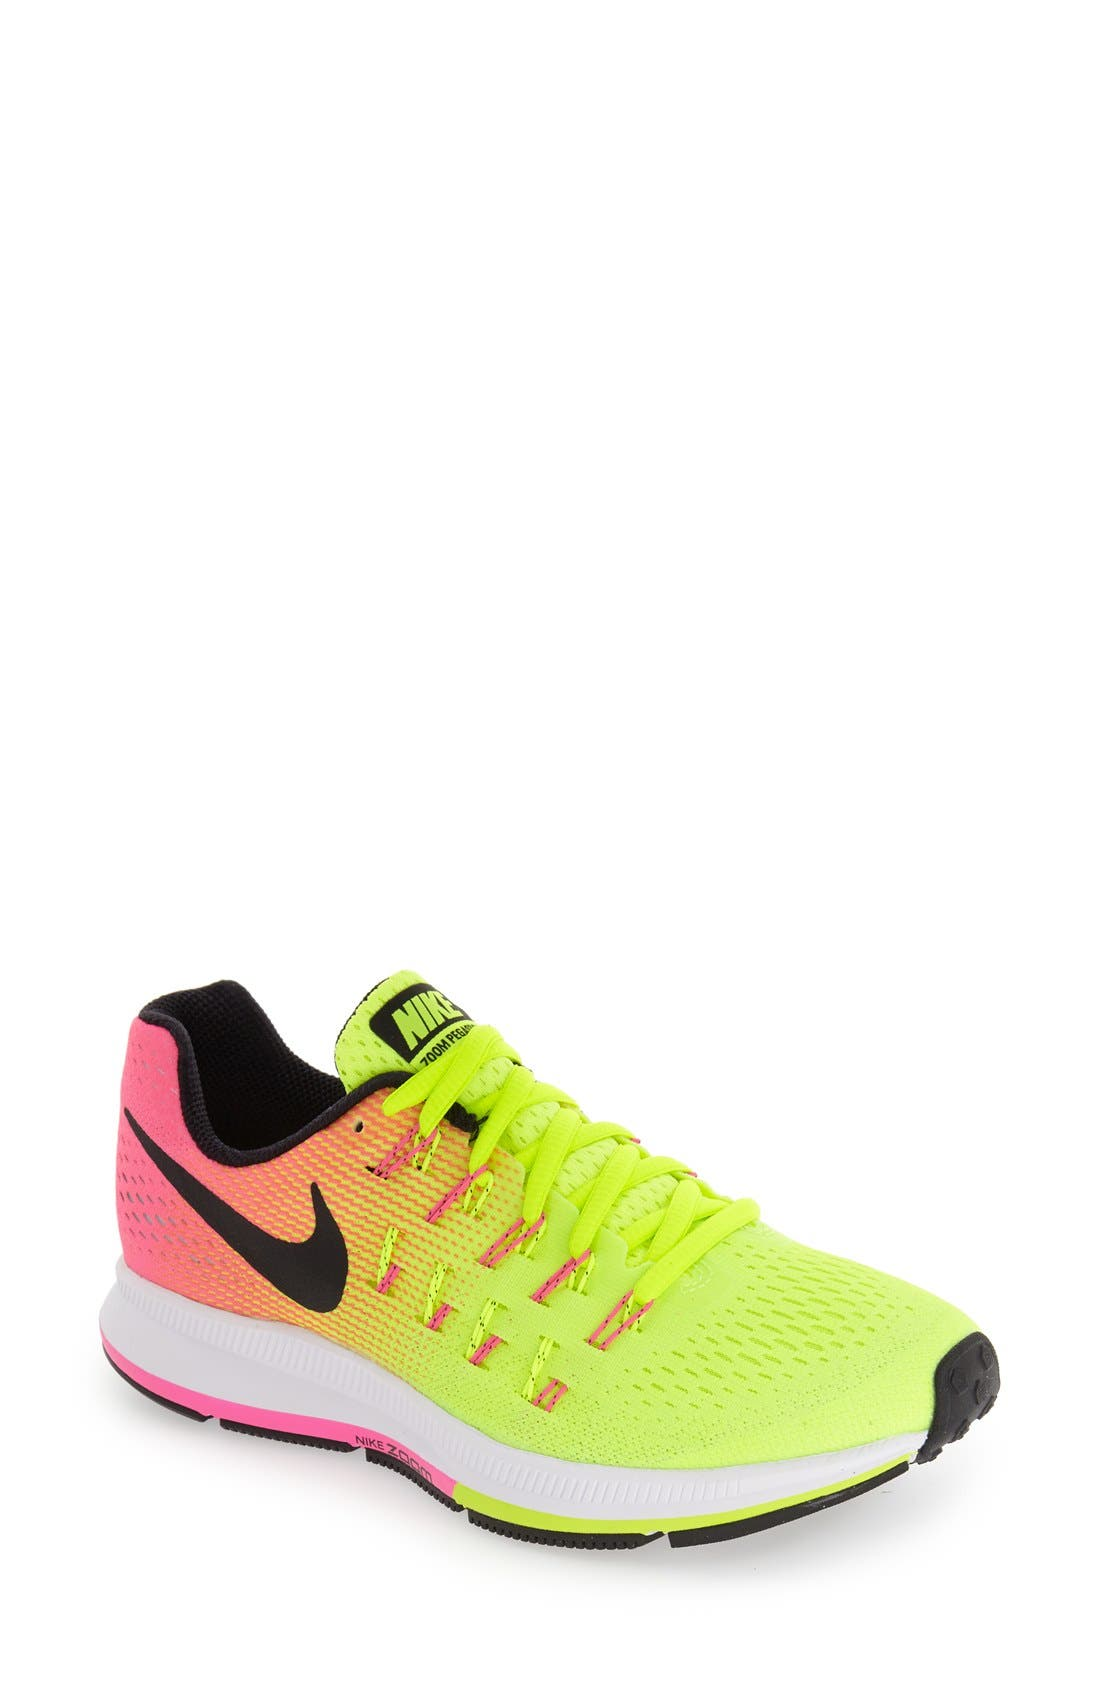 Main Image - Nike 'Air Zoom Pegasus 33' Sneaker (Women)